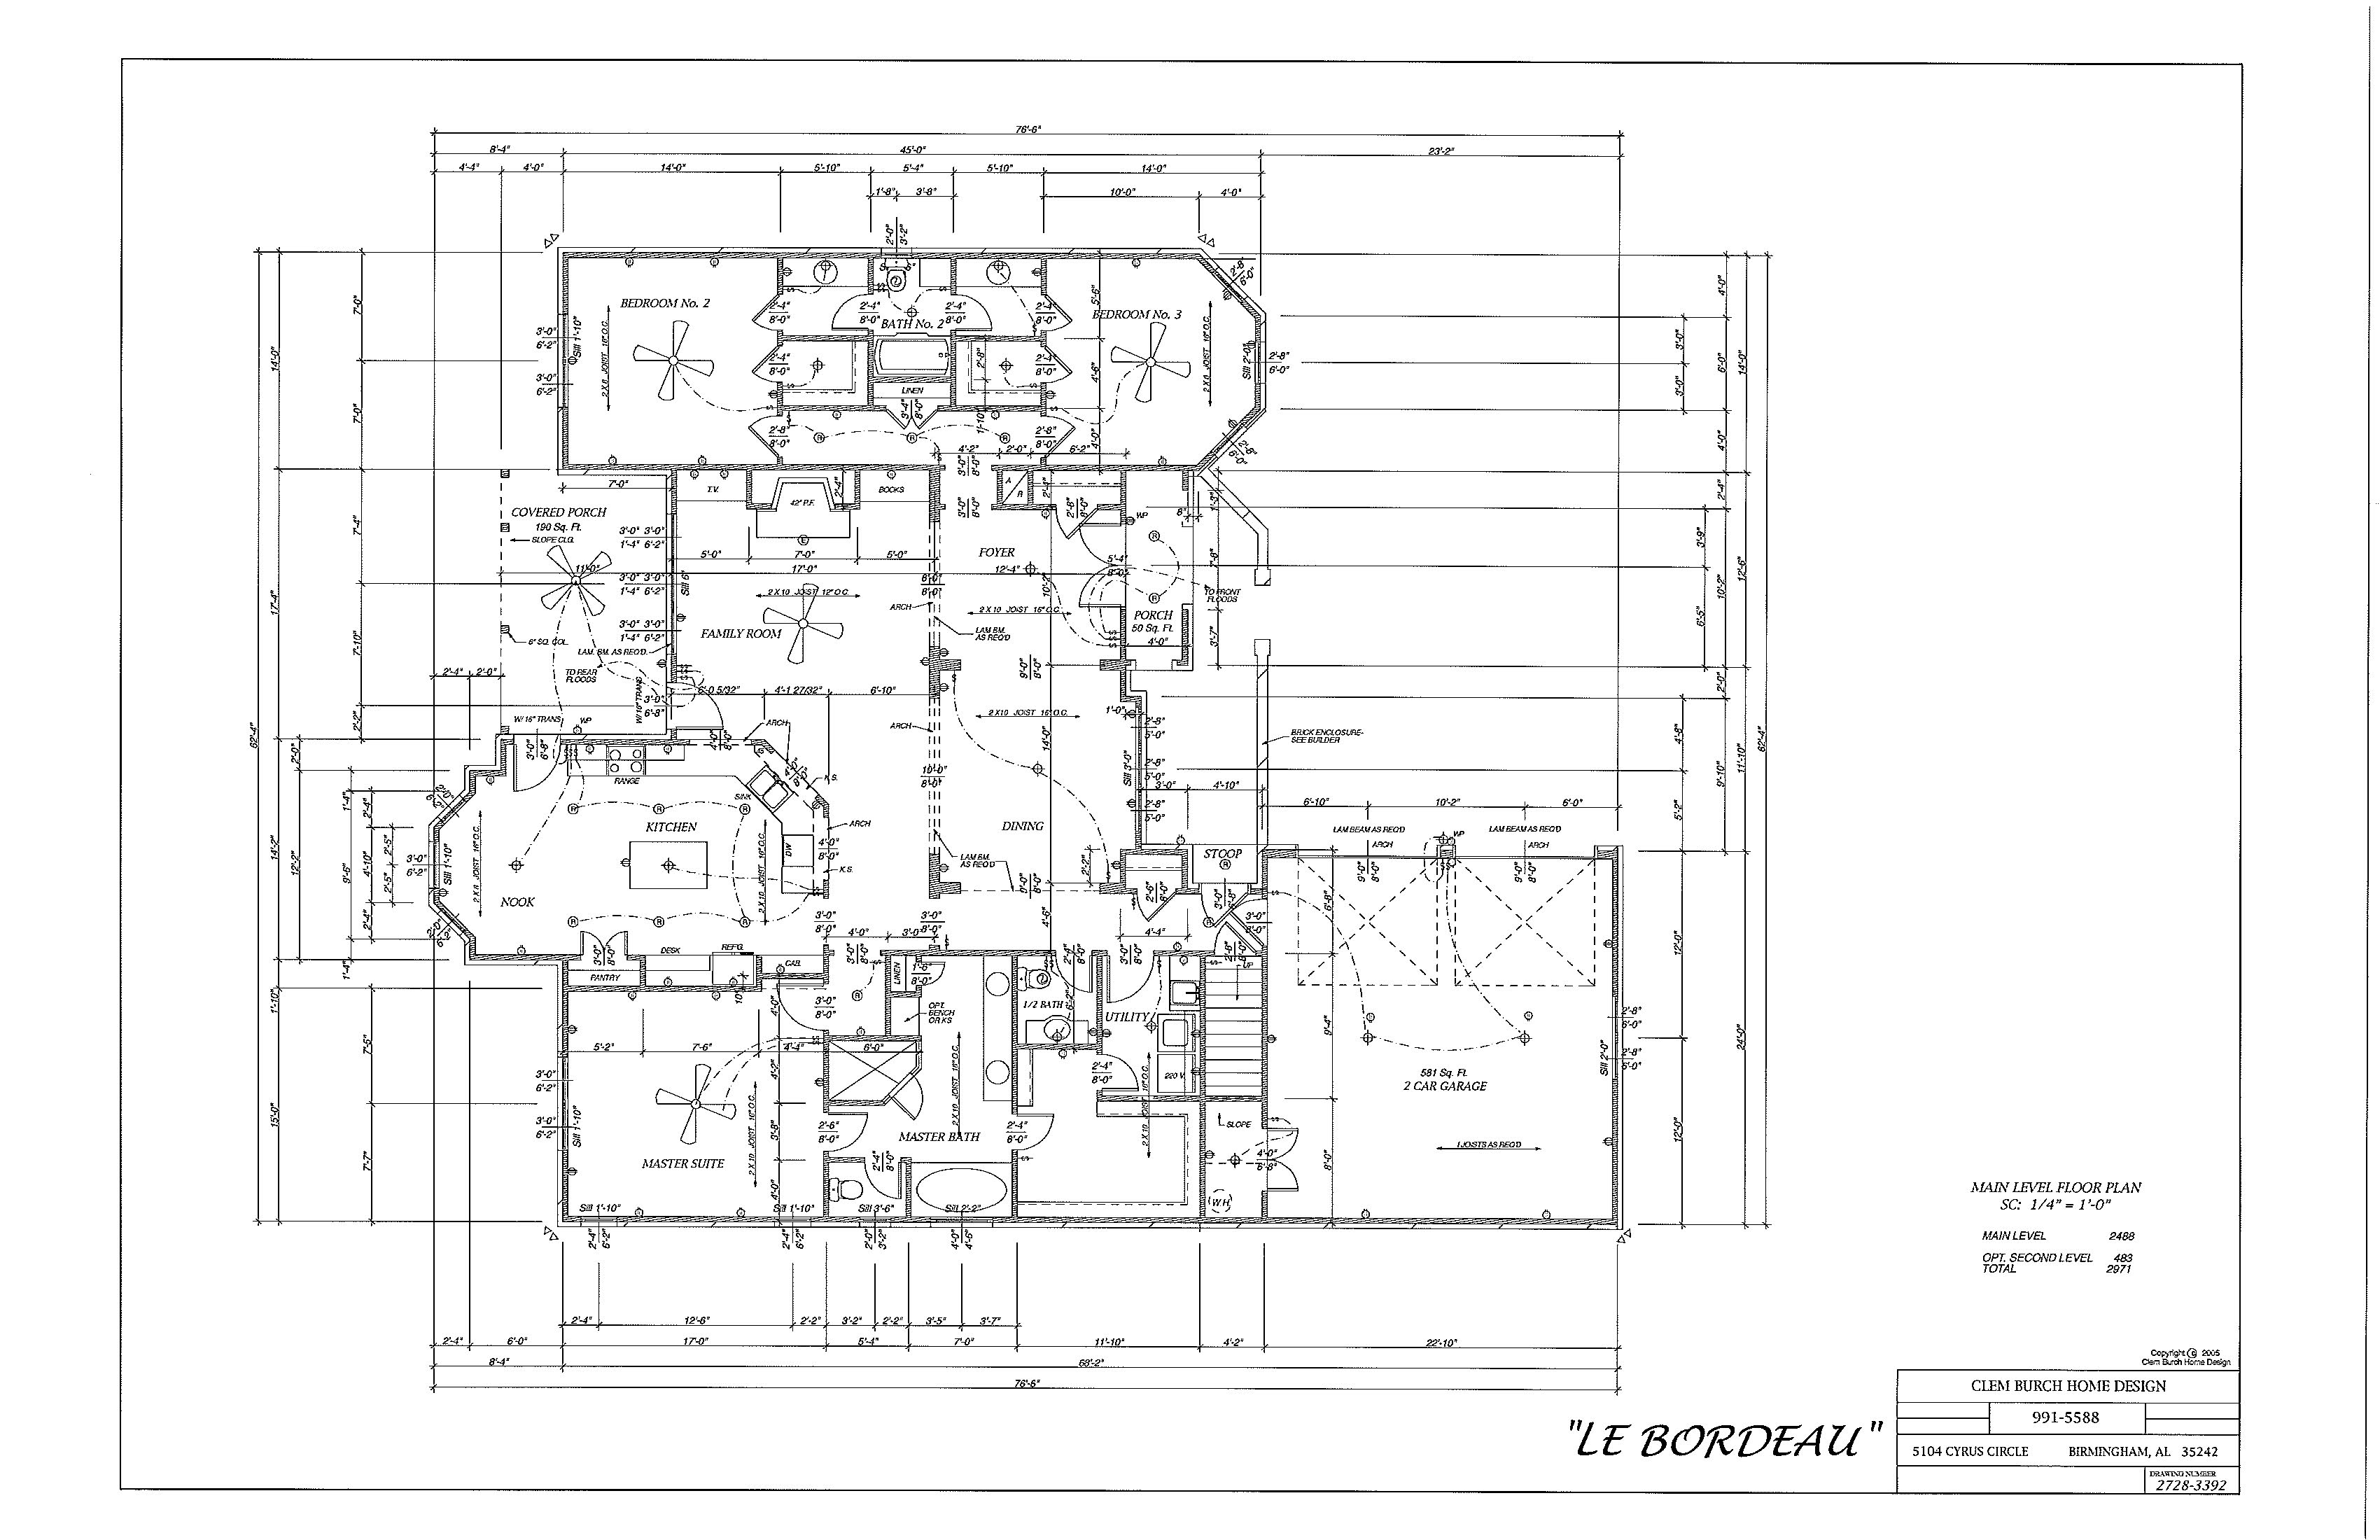 Le_Bordeau Floor Plan 1